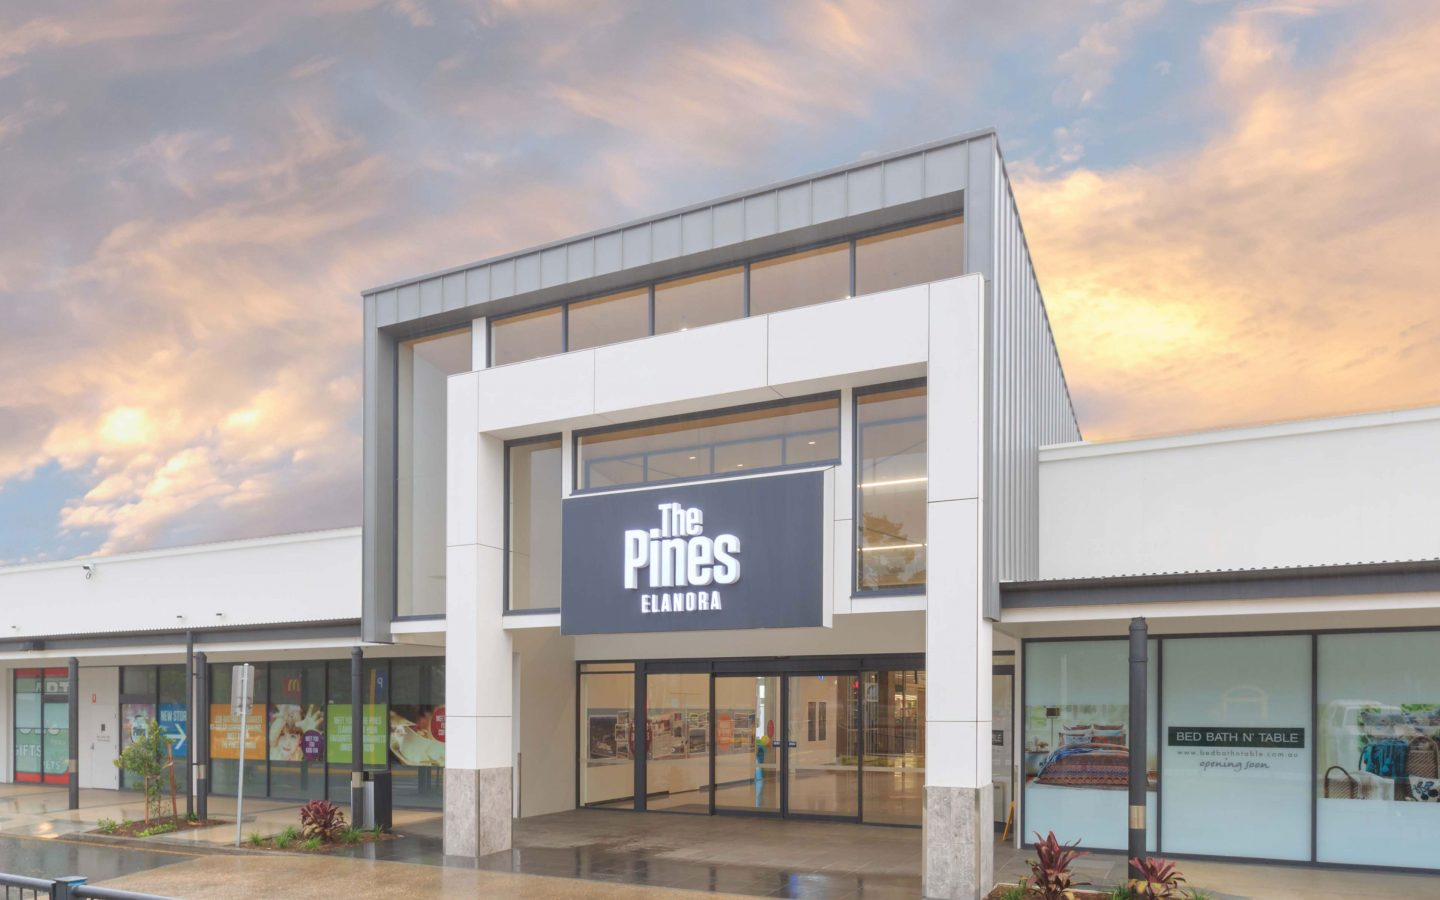 The Pines, Elanora QLD – Taking expressions of interest